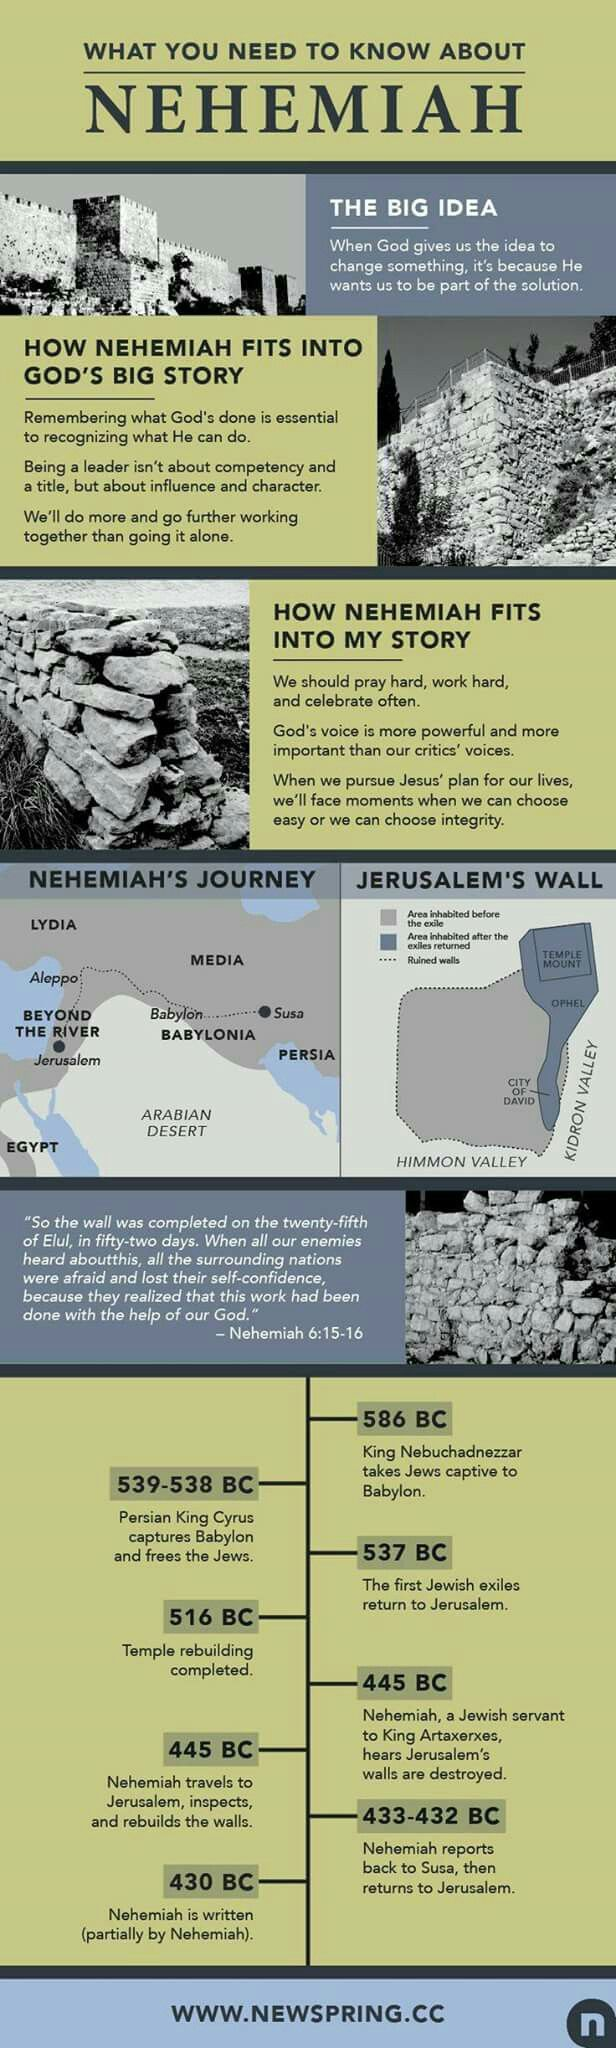 Everything you need to know about Nehemiah